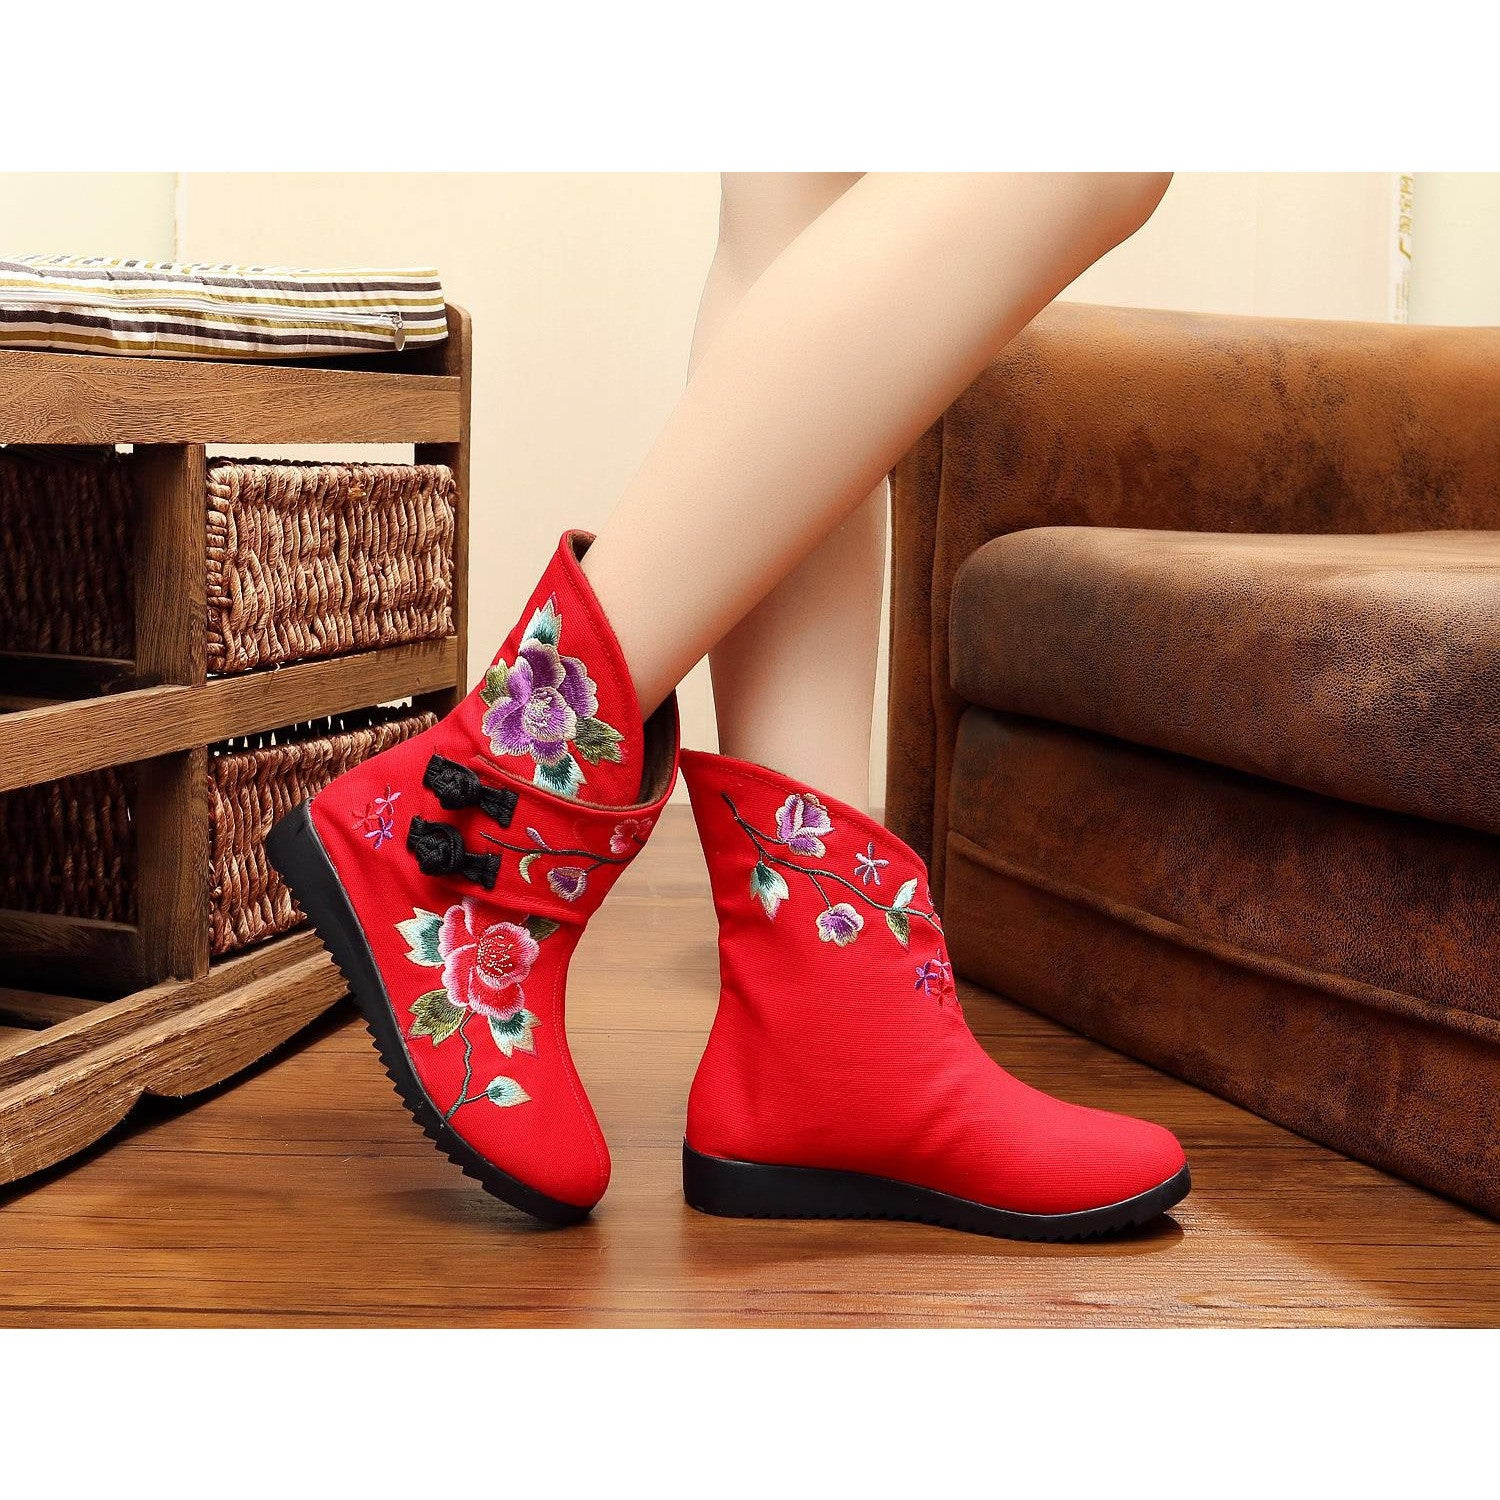 Embroidered printed handmade ventilate flattied cotton boots - cultureincart.com